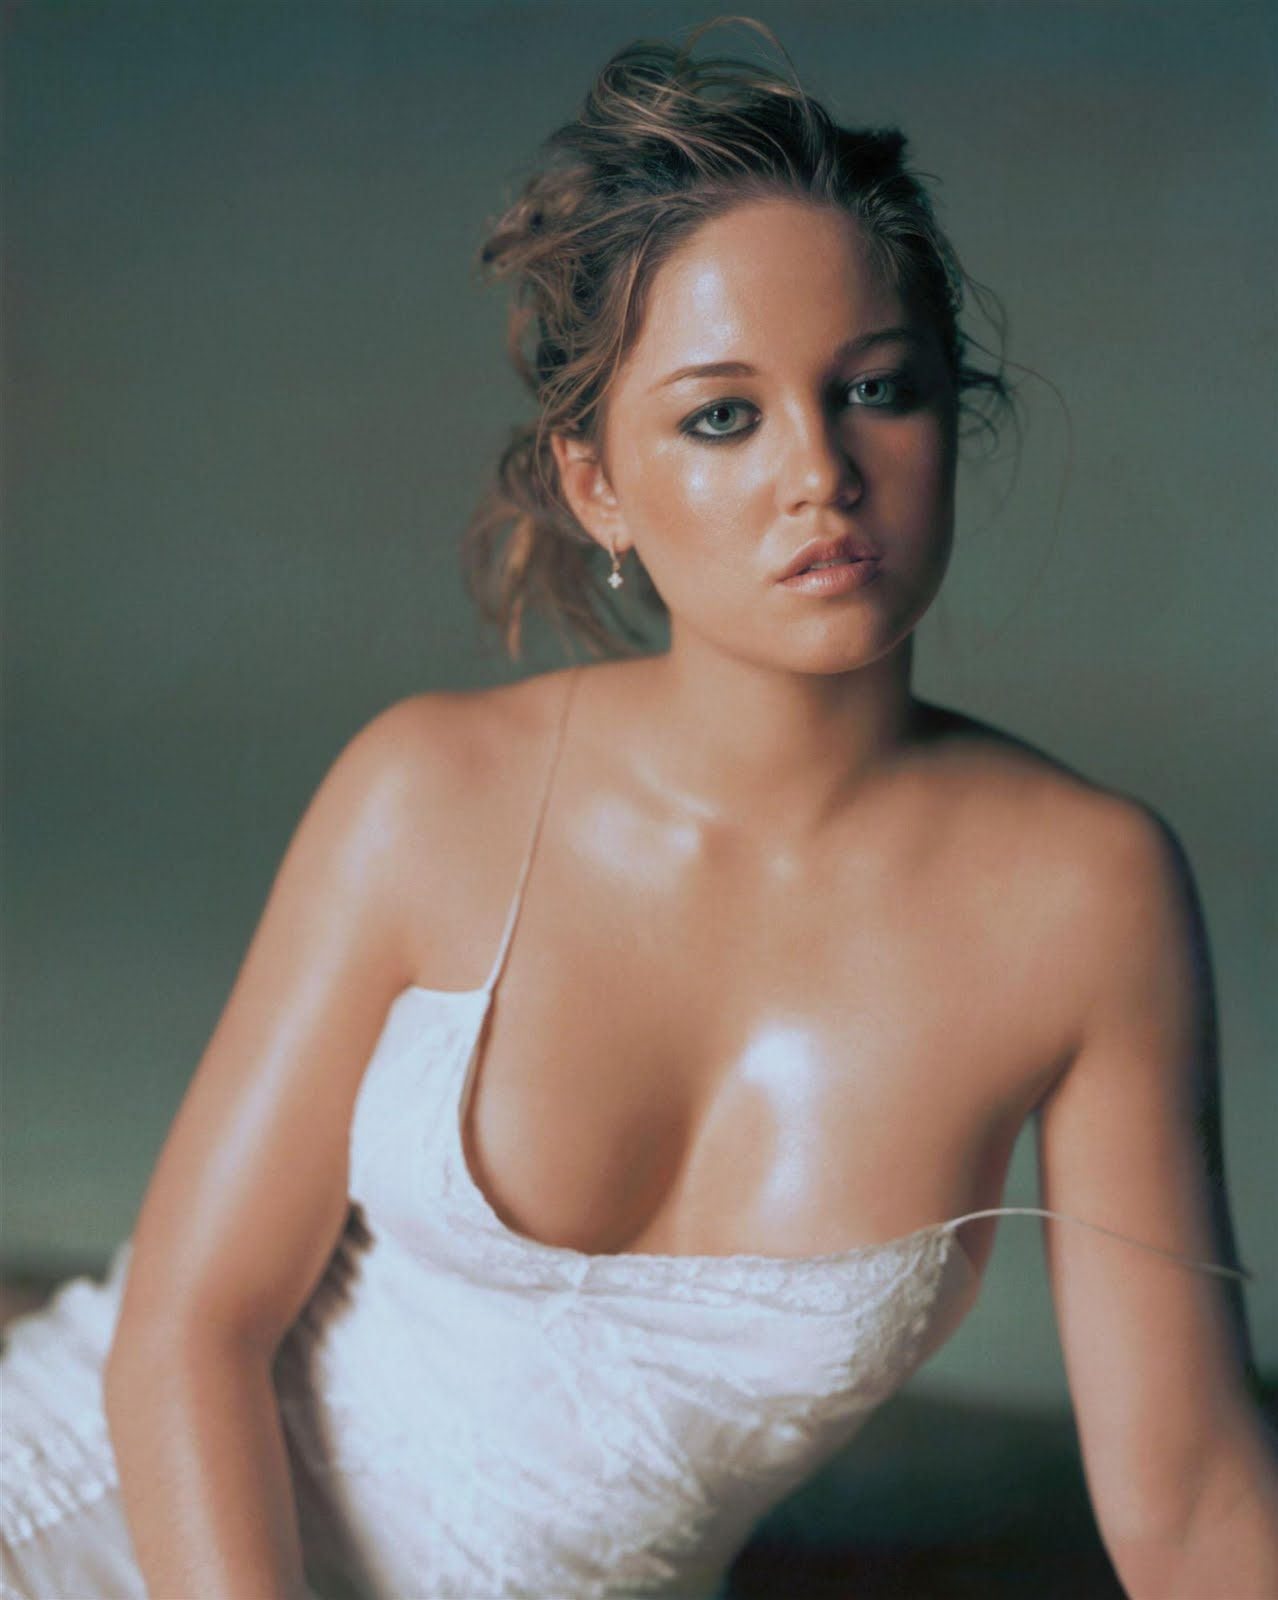 Celebrites Erika Christensen nude (16 foto and video), Ass, Hot, Boobs, butt 2006